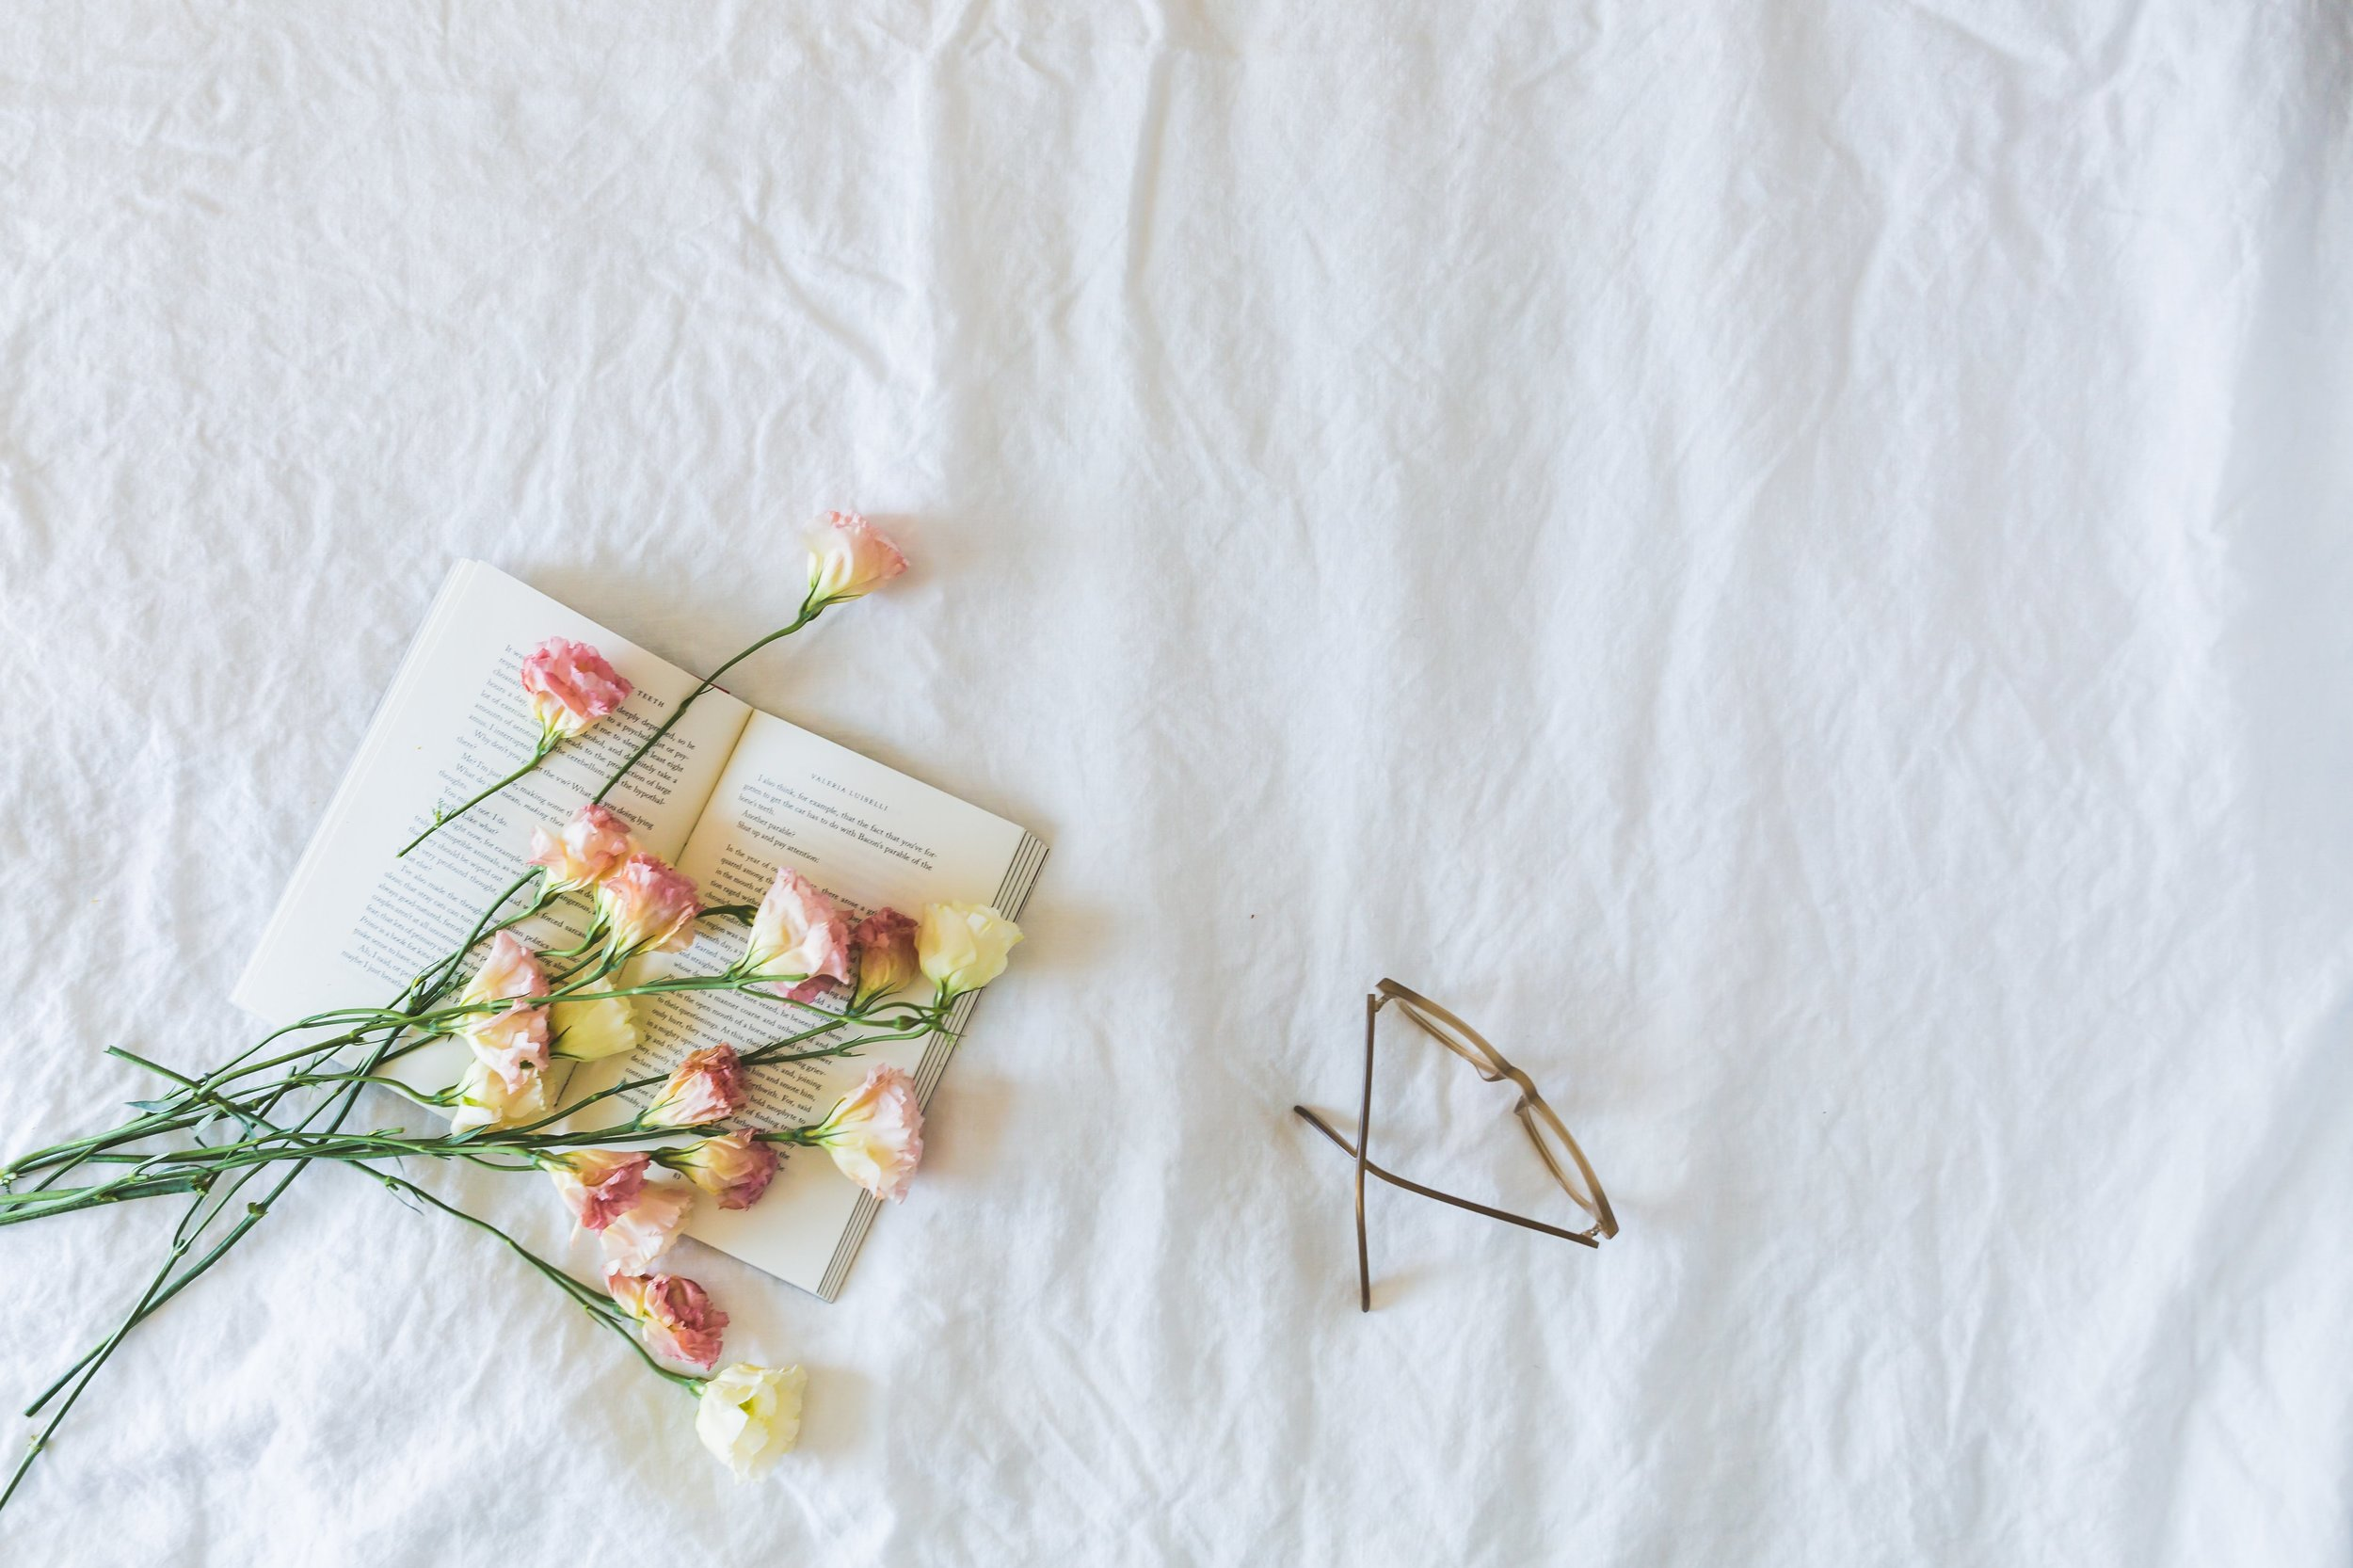 book-flowers-glasses-flatlay_4460x4460.jpg